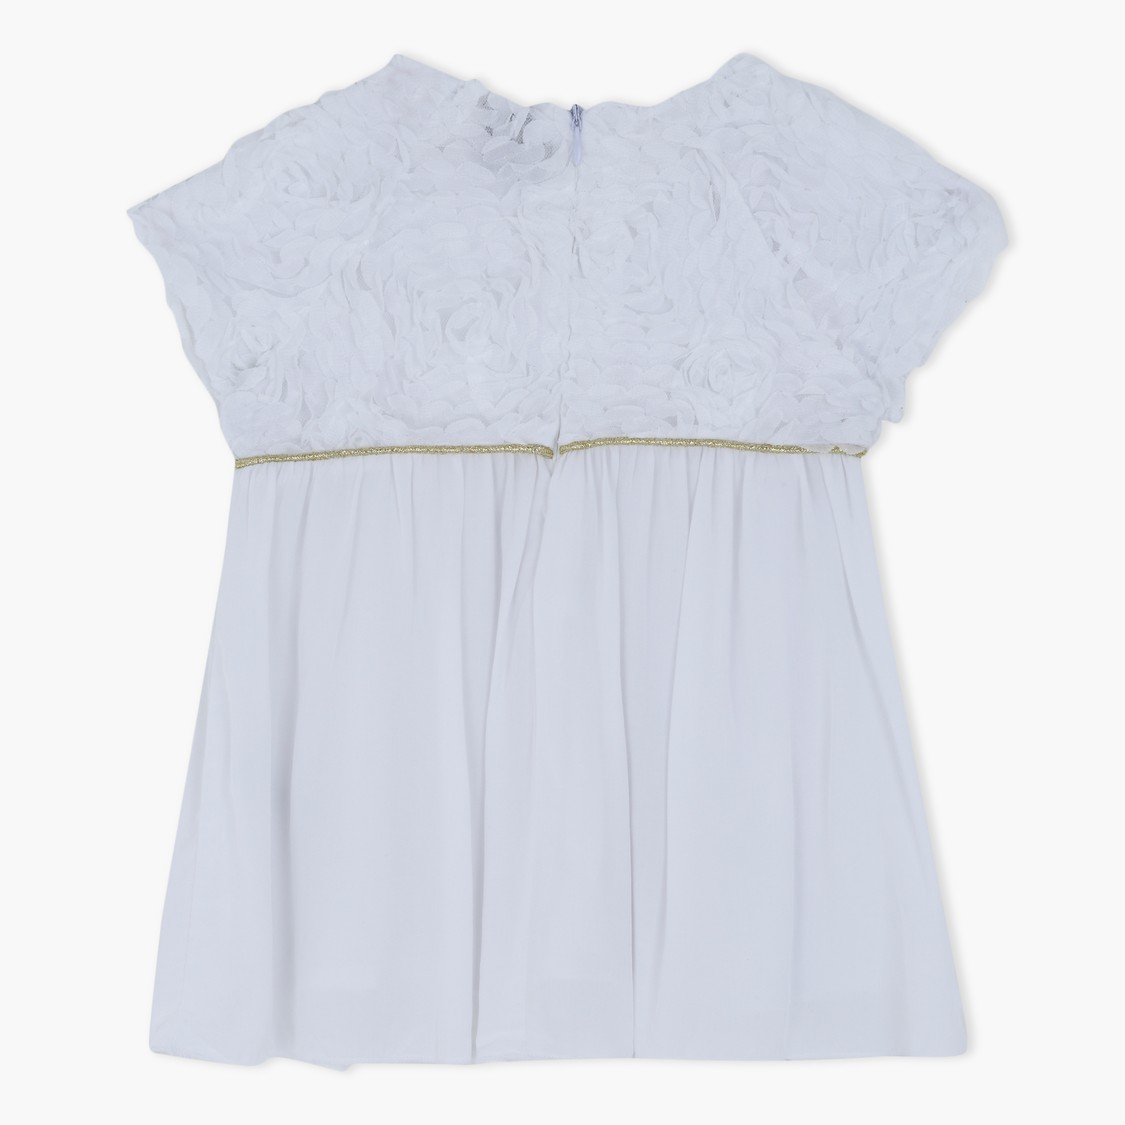 Woven Top with Lace Detailing and Piping